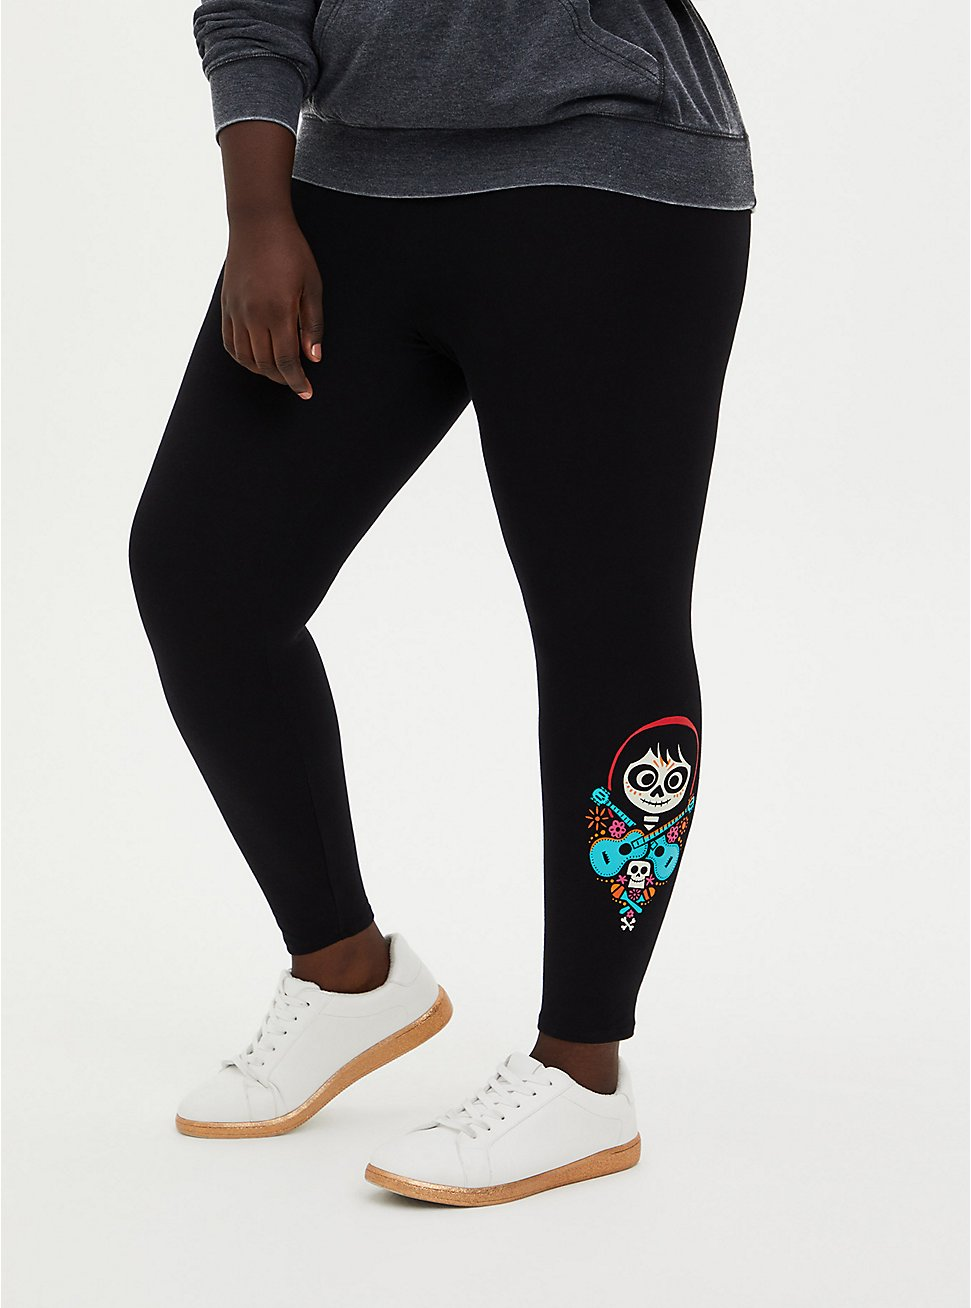 Disney Coco Guitar Black Crop Legging, DEEP BLACK, hi-res